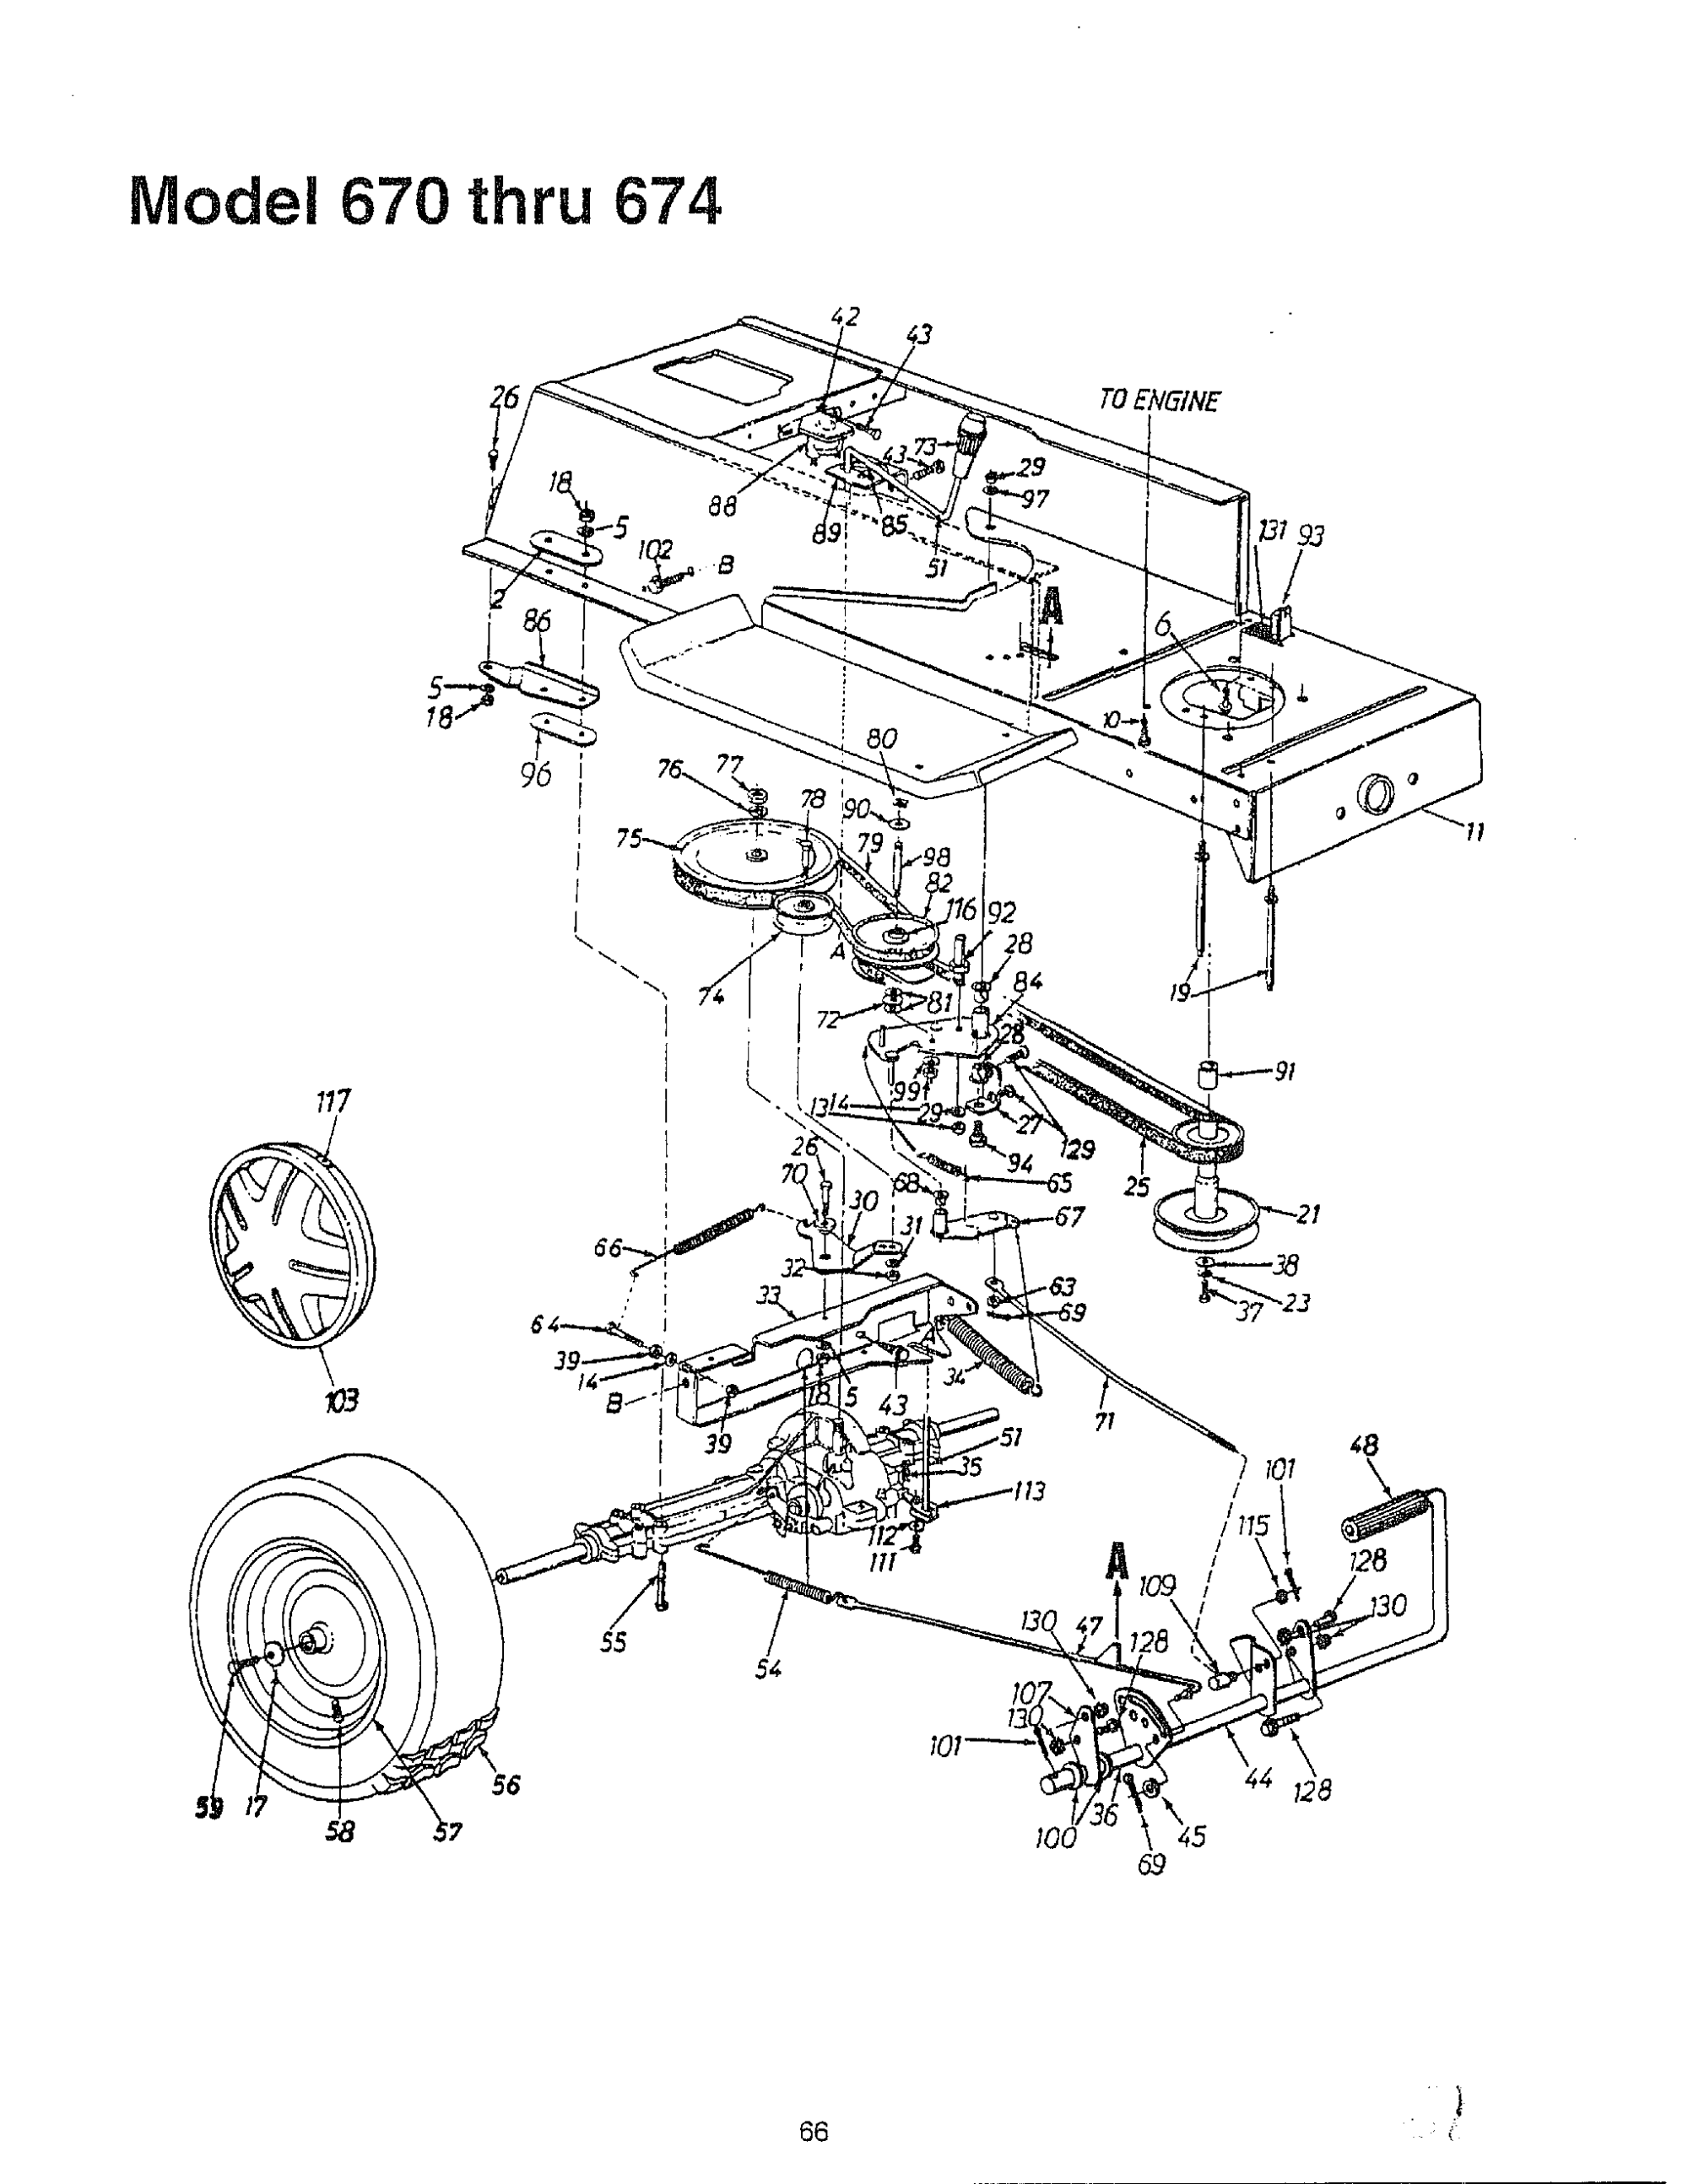 hight resolution of mtd lawn mower parts diagram wiring diagram mega mtd lawn mower electrical diagram looking for mtd